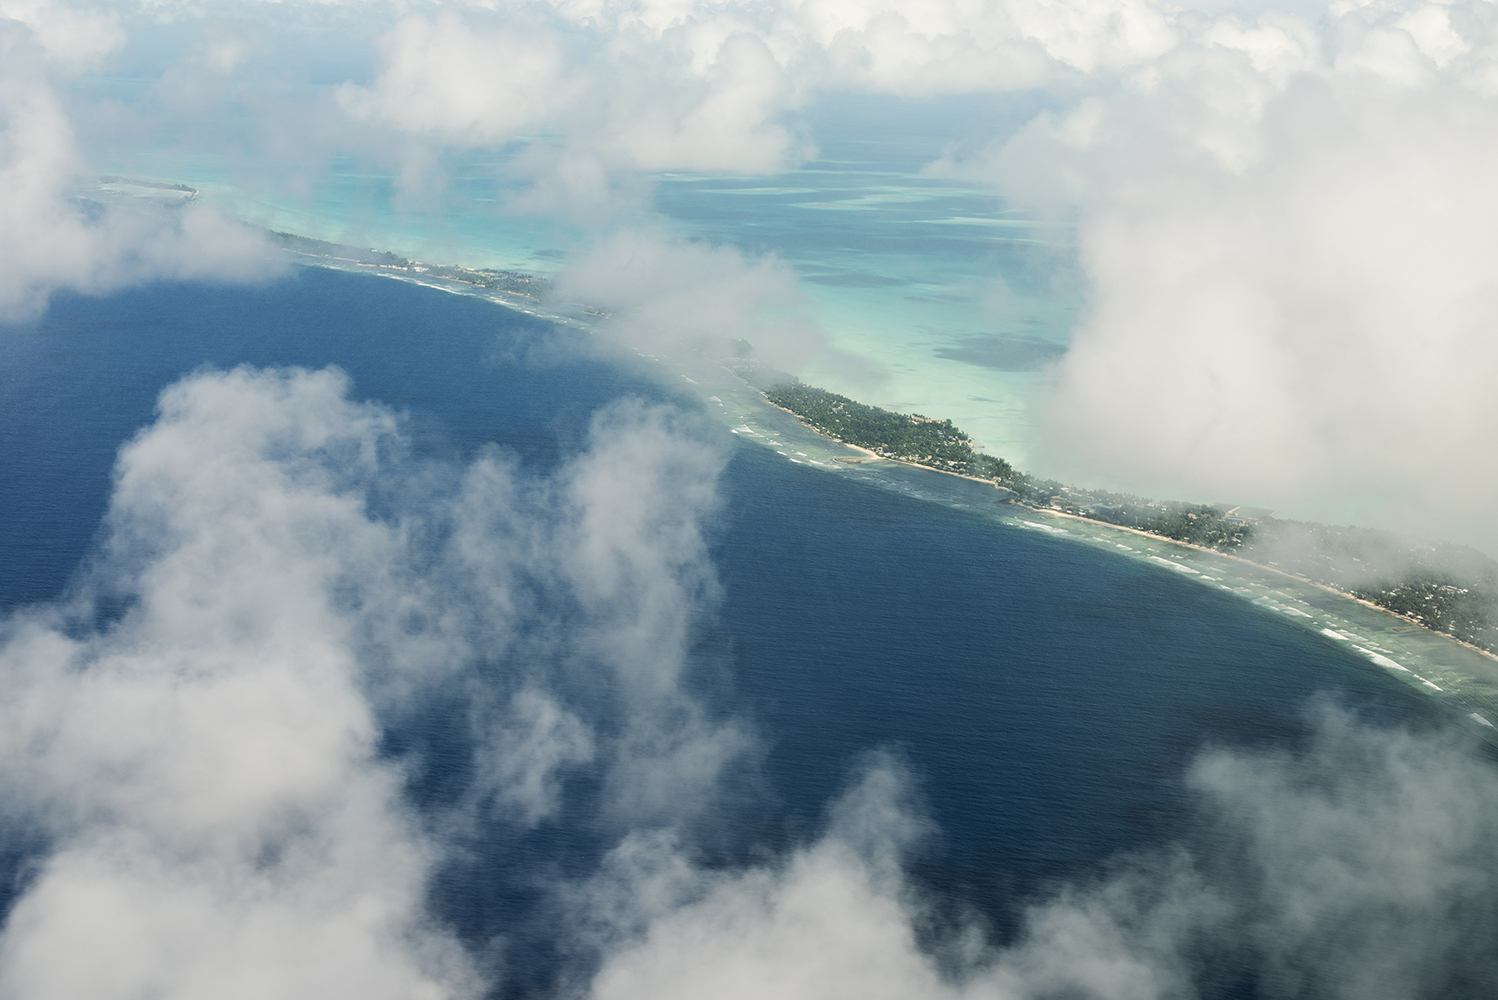 Tarawa Island, Kiribati, Pacific Ocean Aerial view of Tarawa archipelago, Kiribati. The nation is composed by 32 atolls and considered one of the least developed and poorest countries in the world with people whose livelihoods depend on the fish.